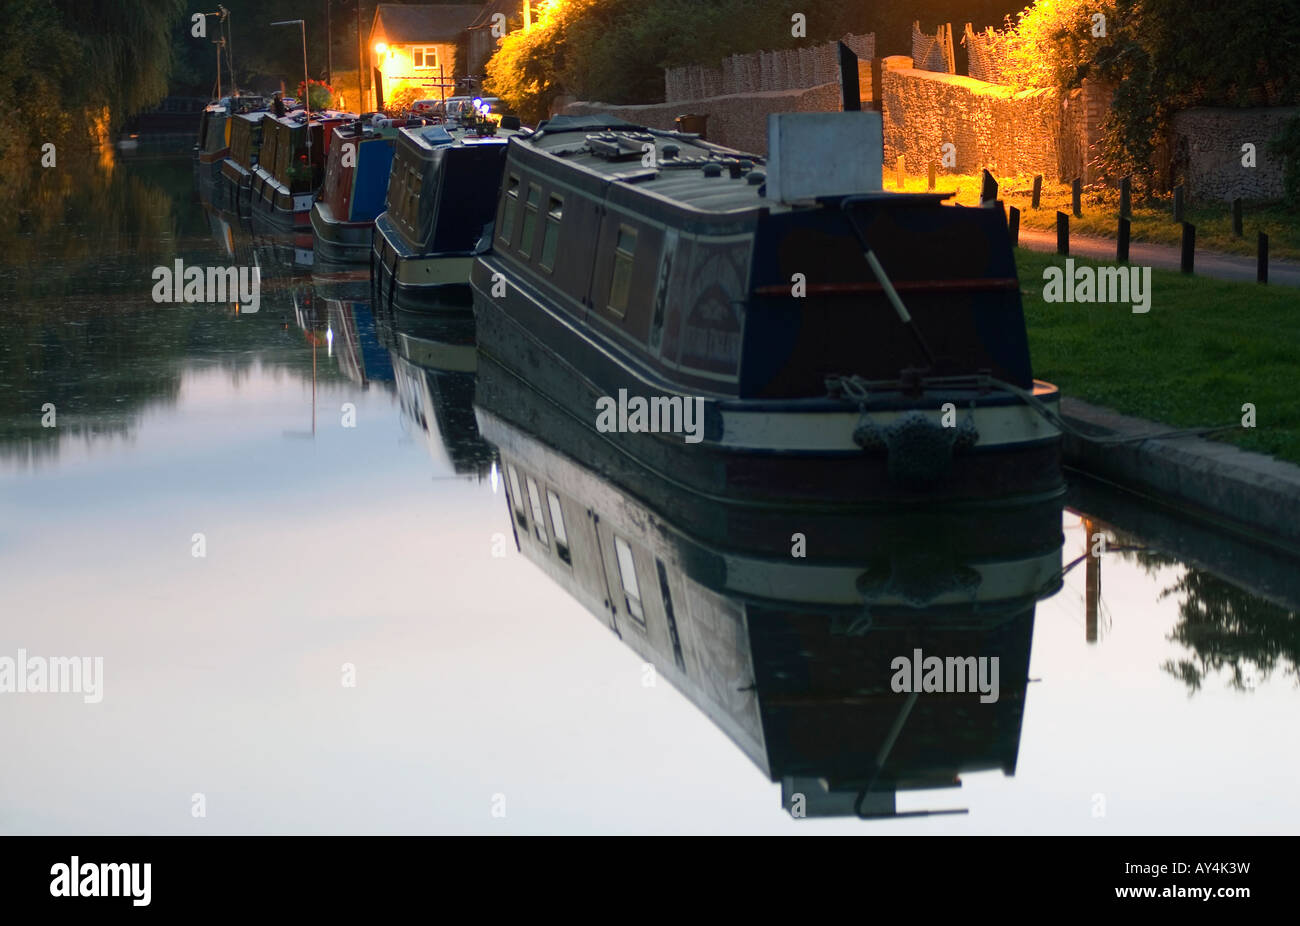 Doug Blane Narrowboats moored at Thrup on the Oxford canalStock Photo